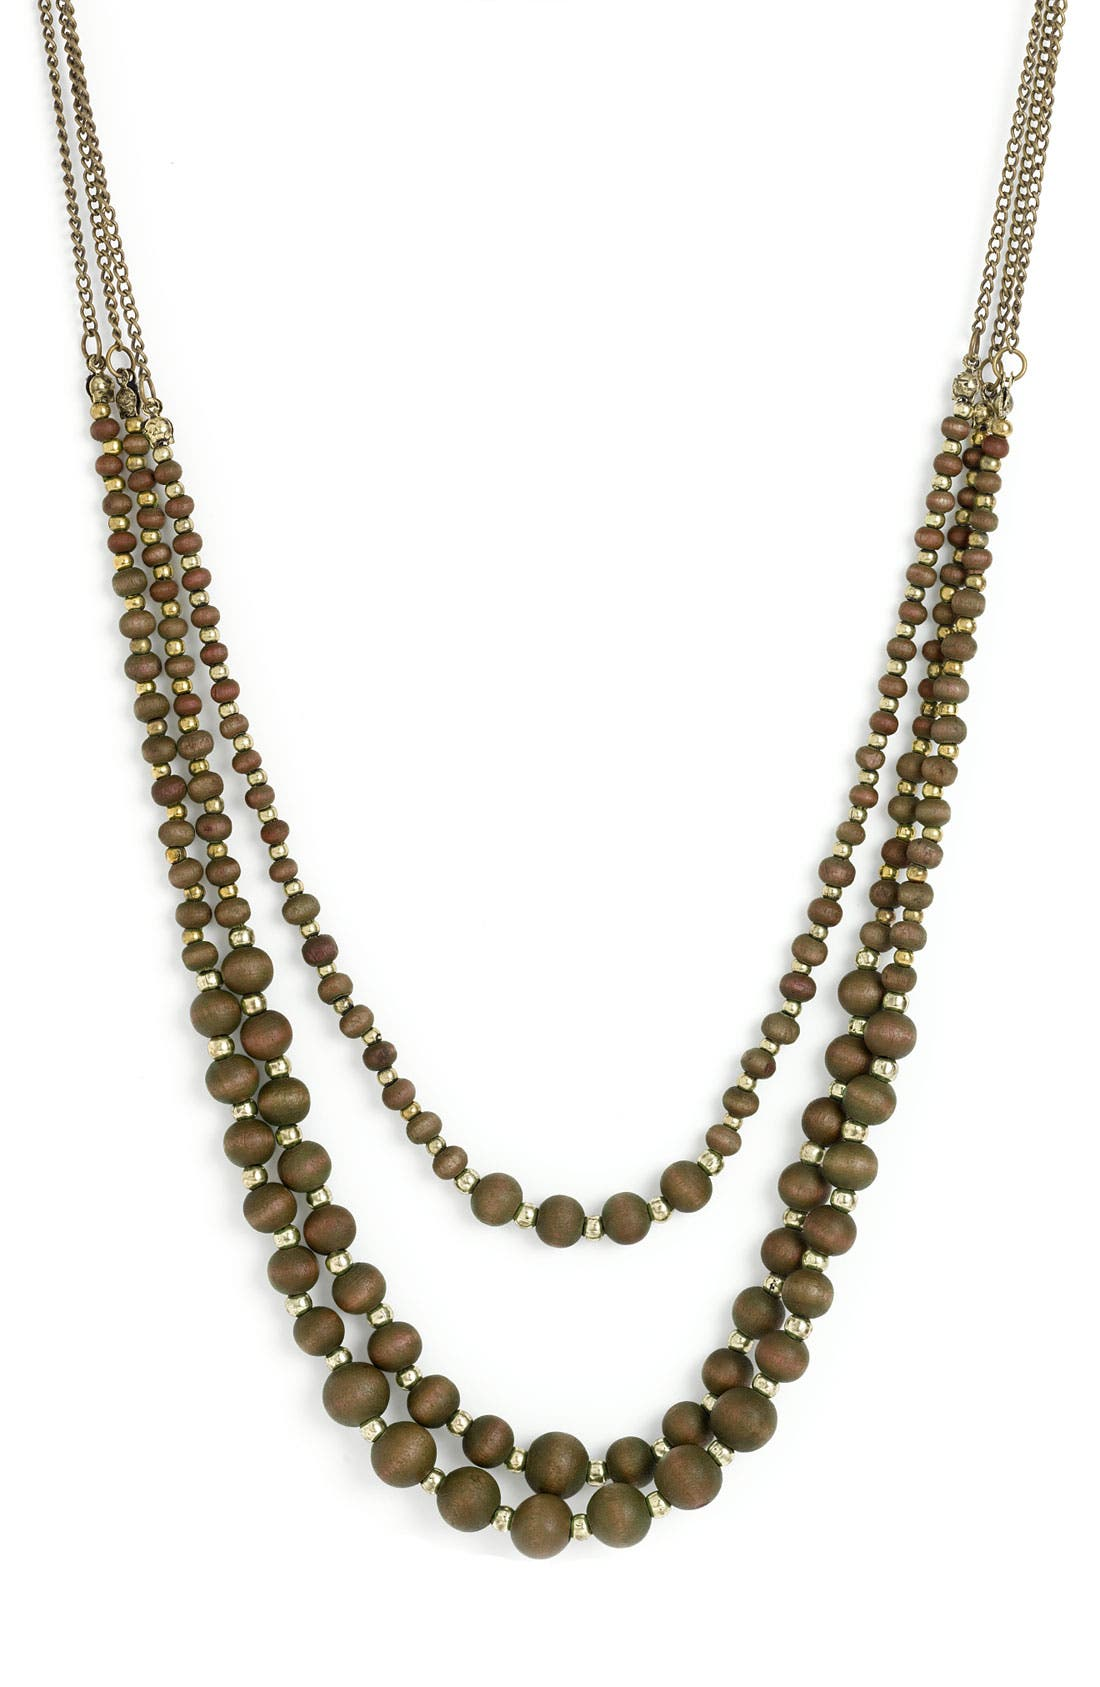 Main Image - Stephan & Co. Wood Bead Layered Necklace